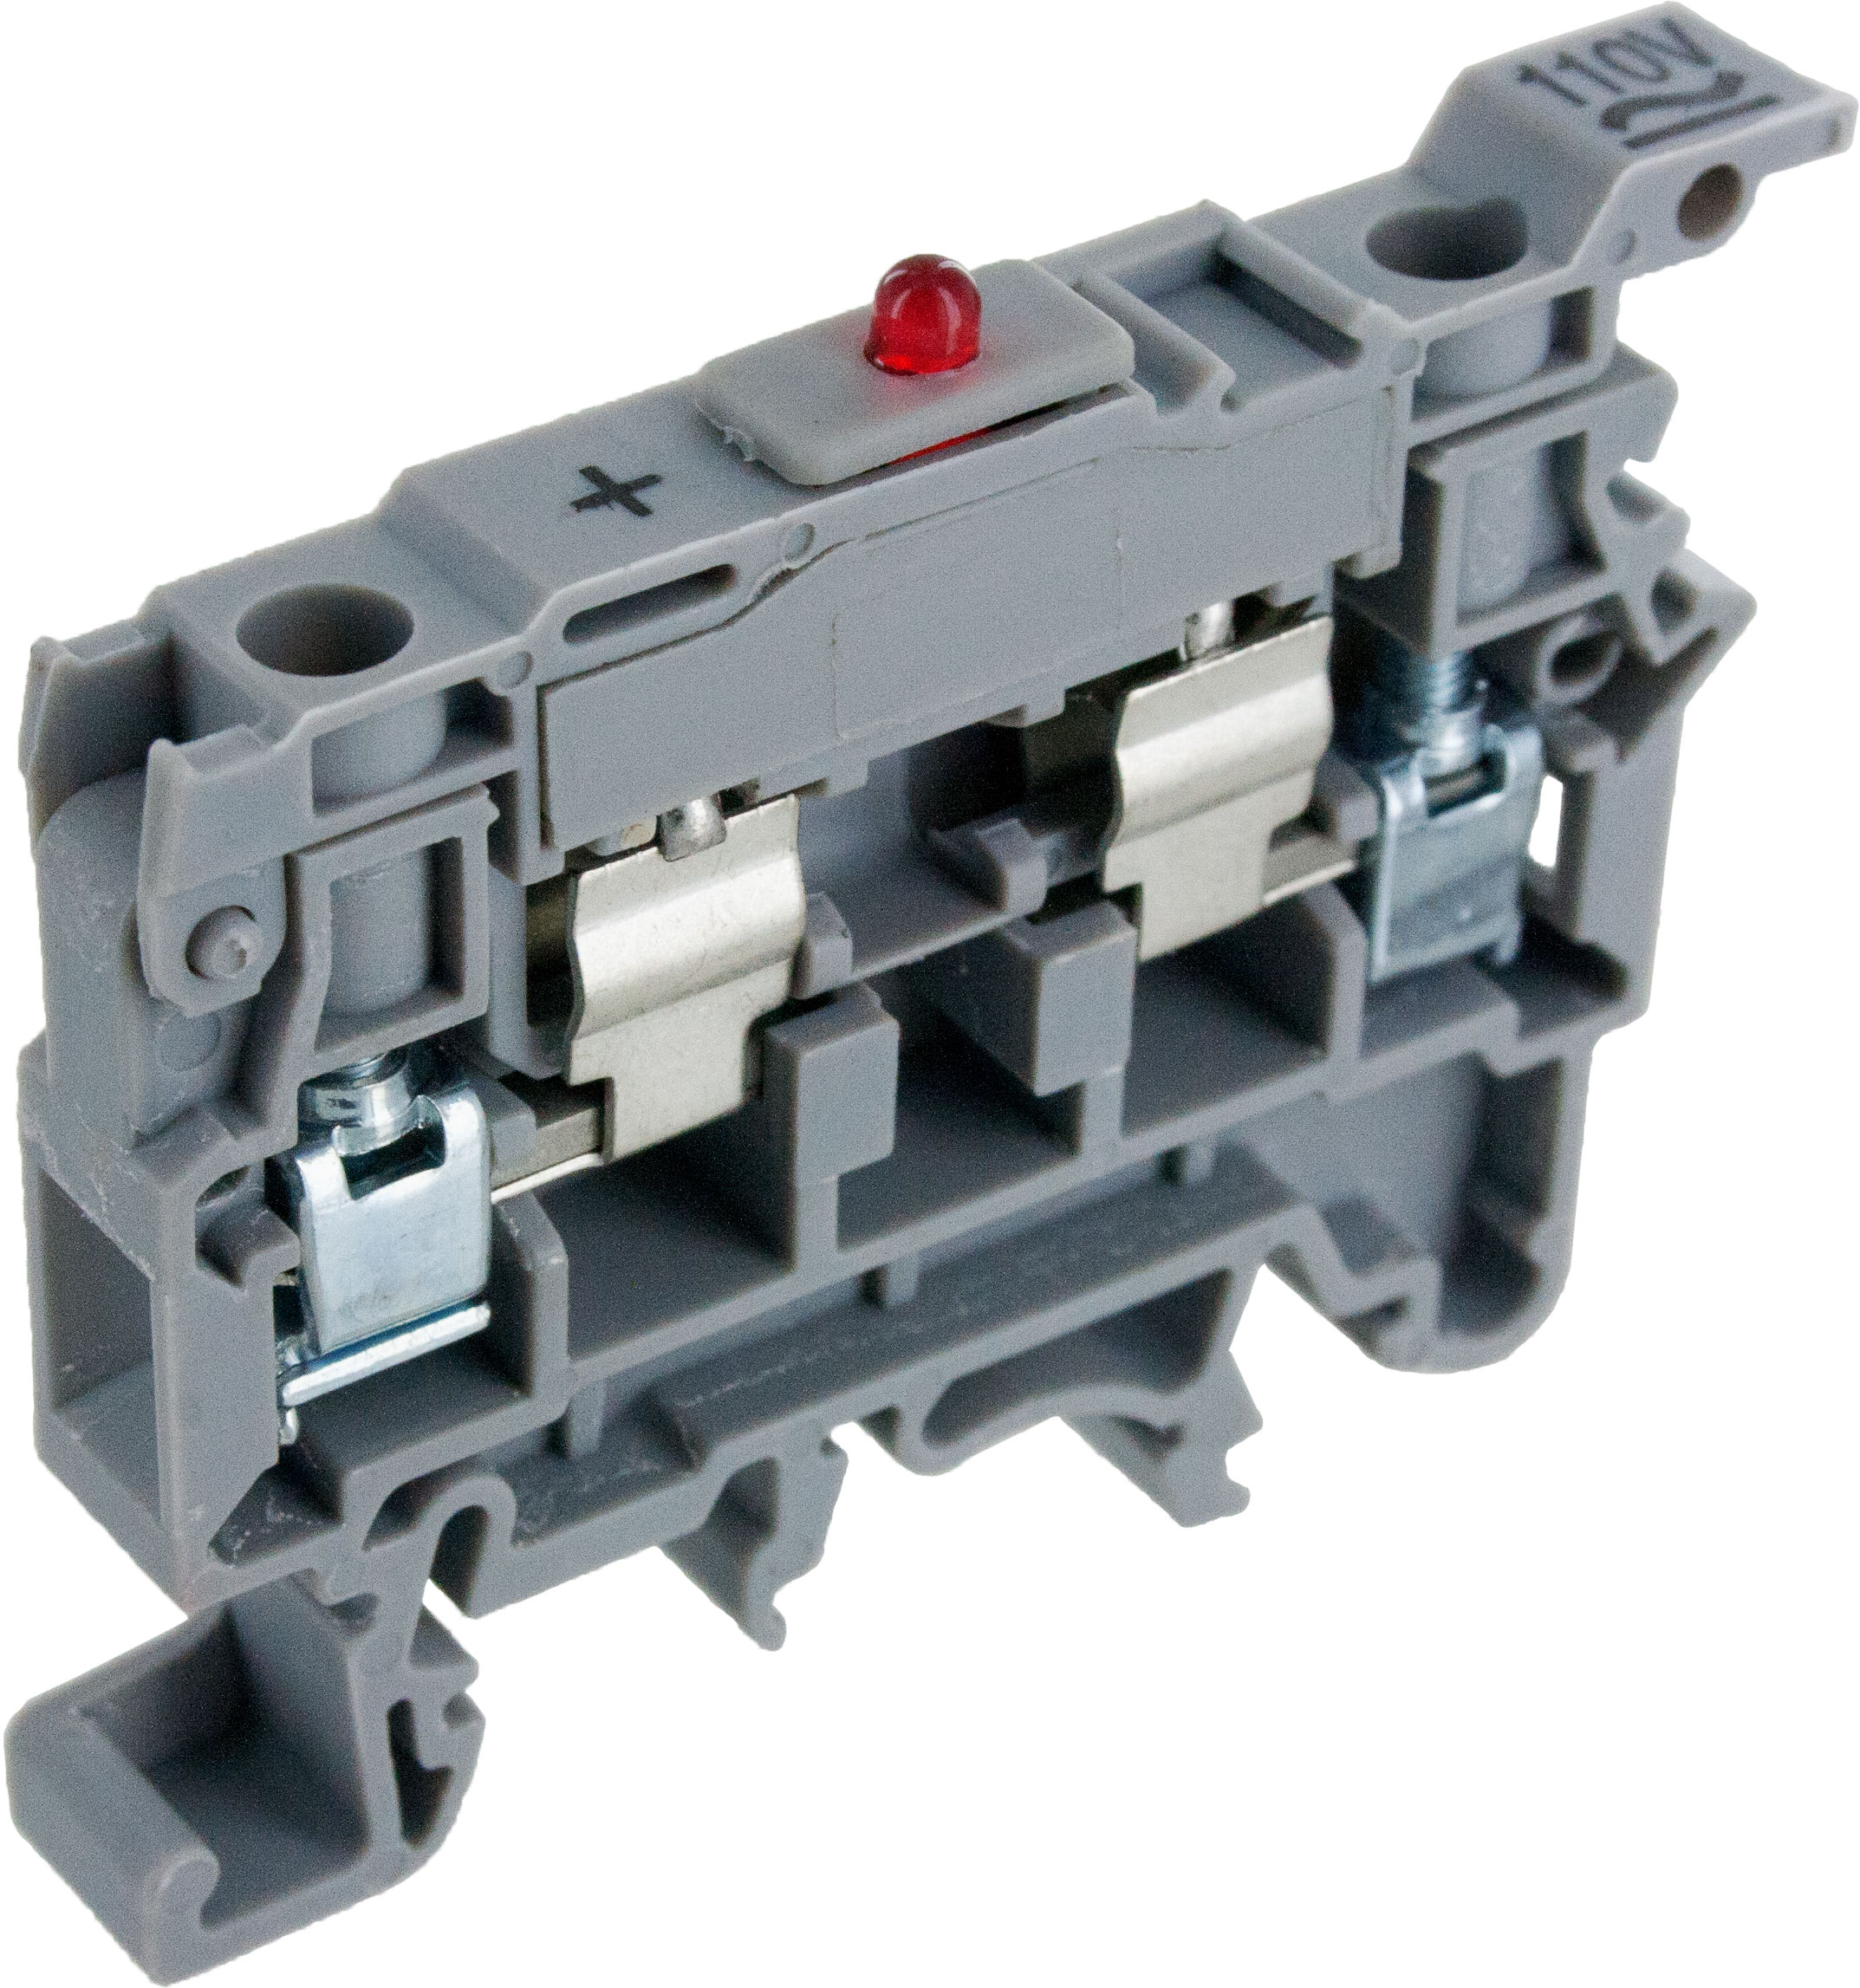 Gray Fuse Terminal Block With Led Csfl4ul 24 Elecdirect Cole Hersee Heavy Duty Spdt Momentary Toggle Switch 5502155021bx